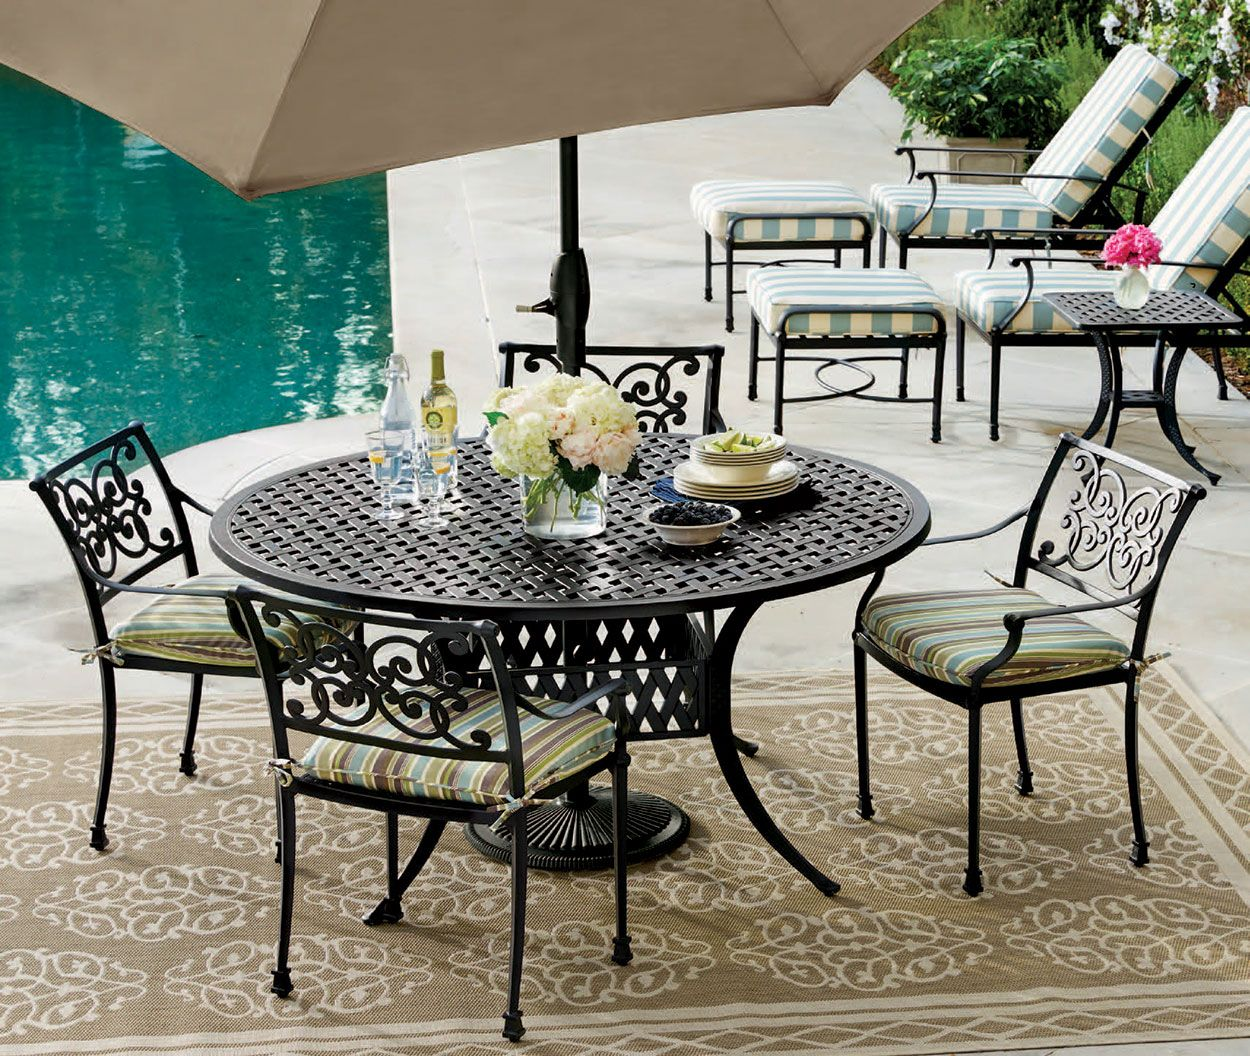 Dars Porch And Patio Hours: Outdoor Spaces Decorating Ideas In 2019